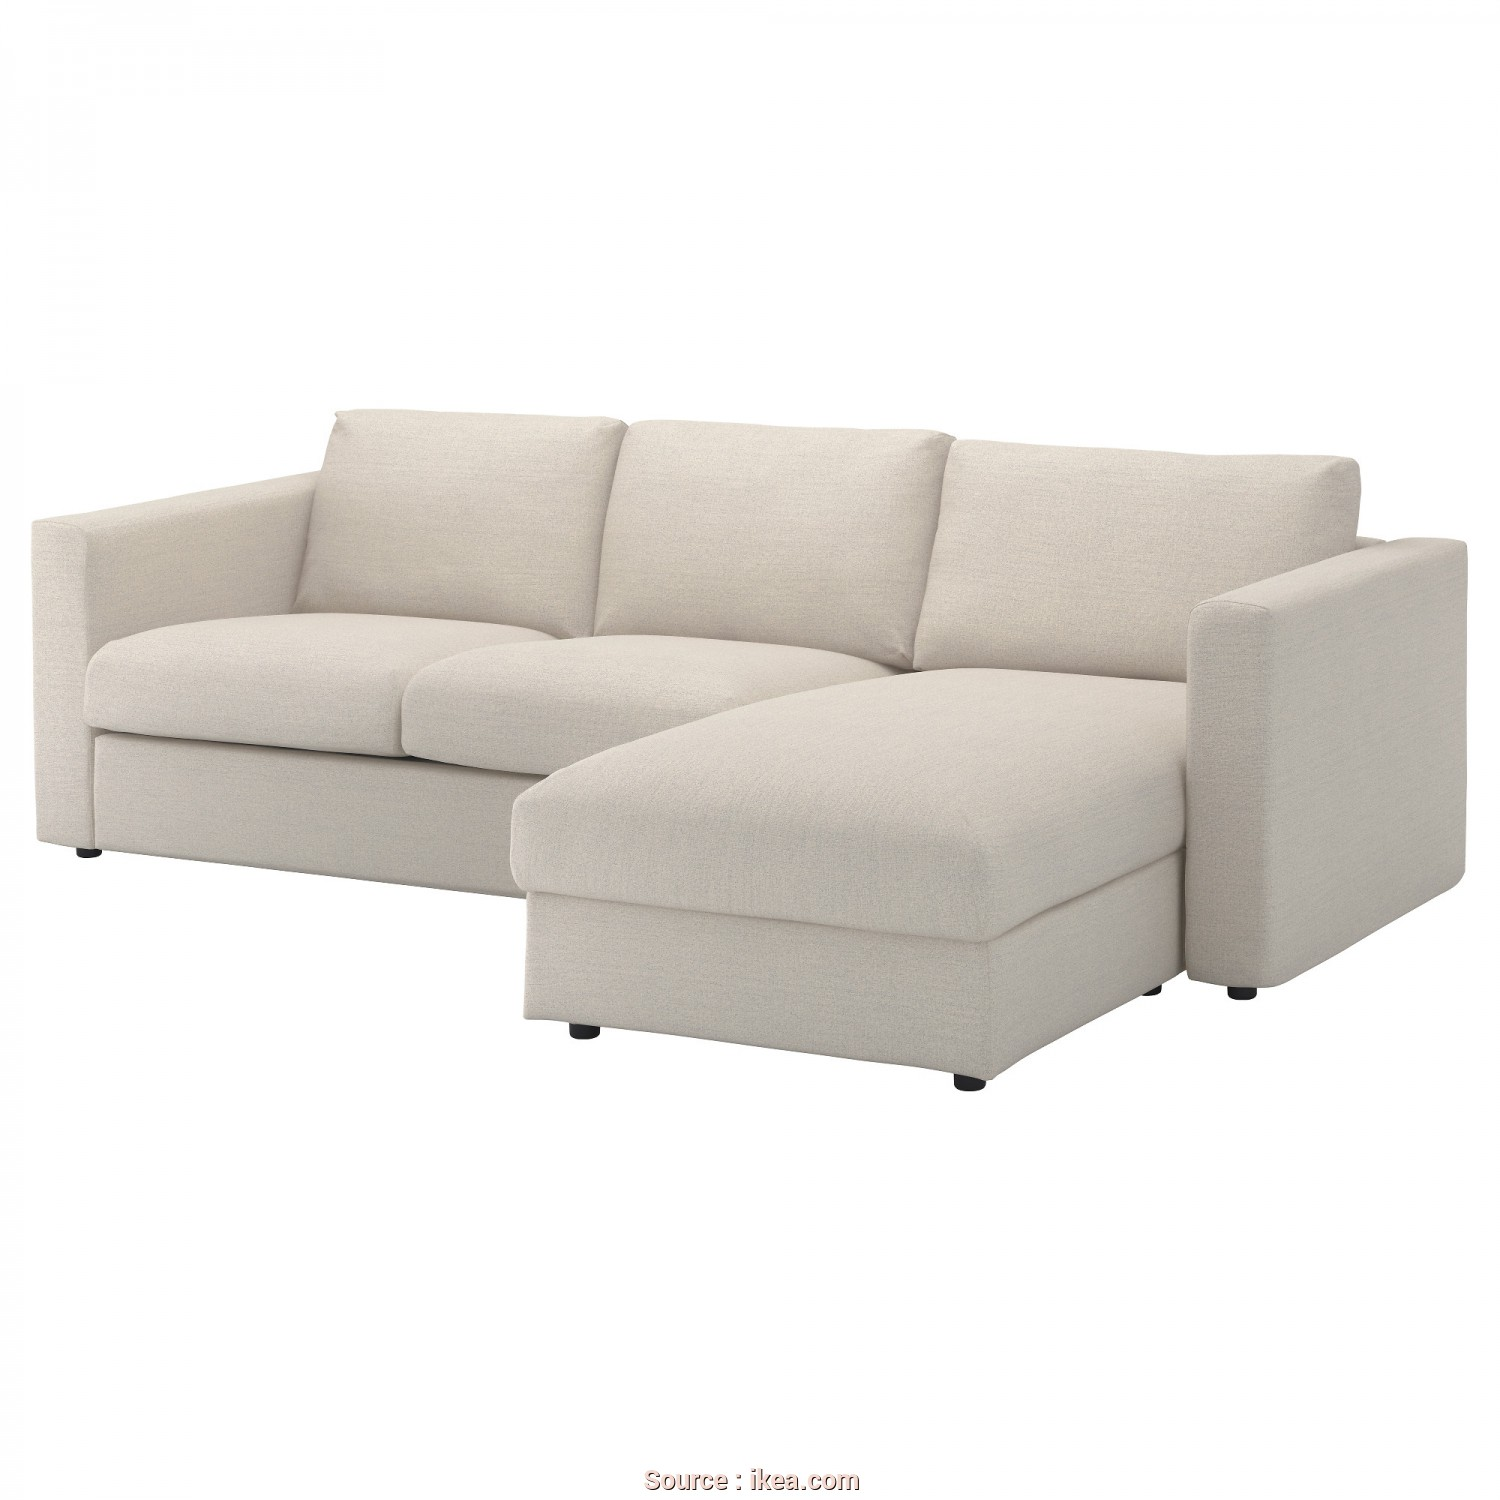 Ikea Klippan 3 Seter, Migliore IKEA VIMLE 3-Seat Sofa, Cover Is Easy To Keep Clean Since It Is